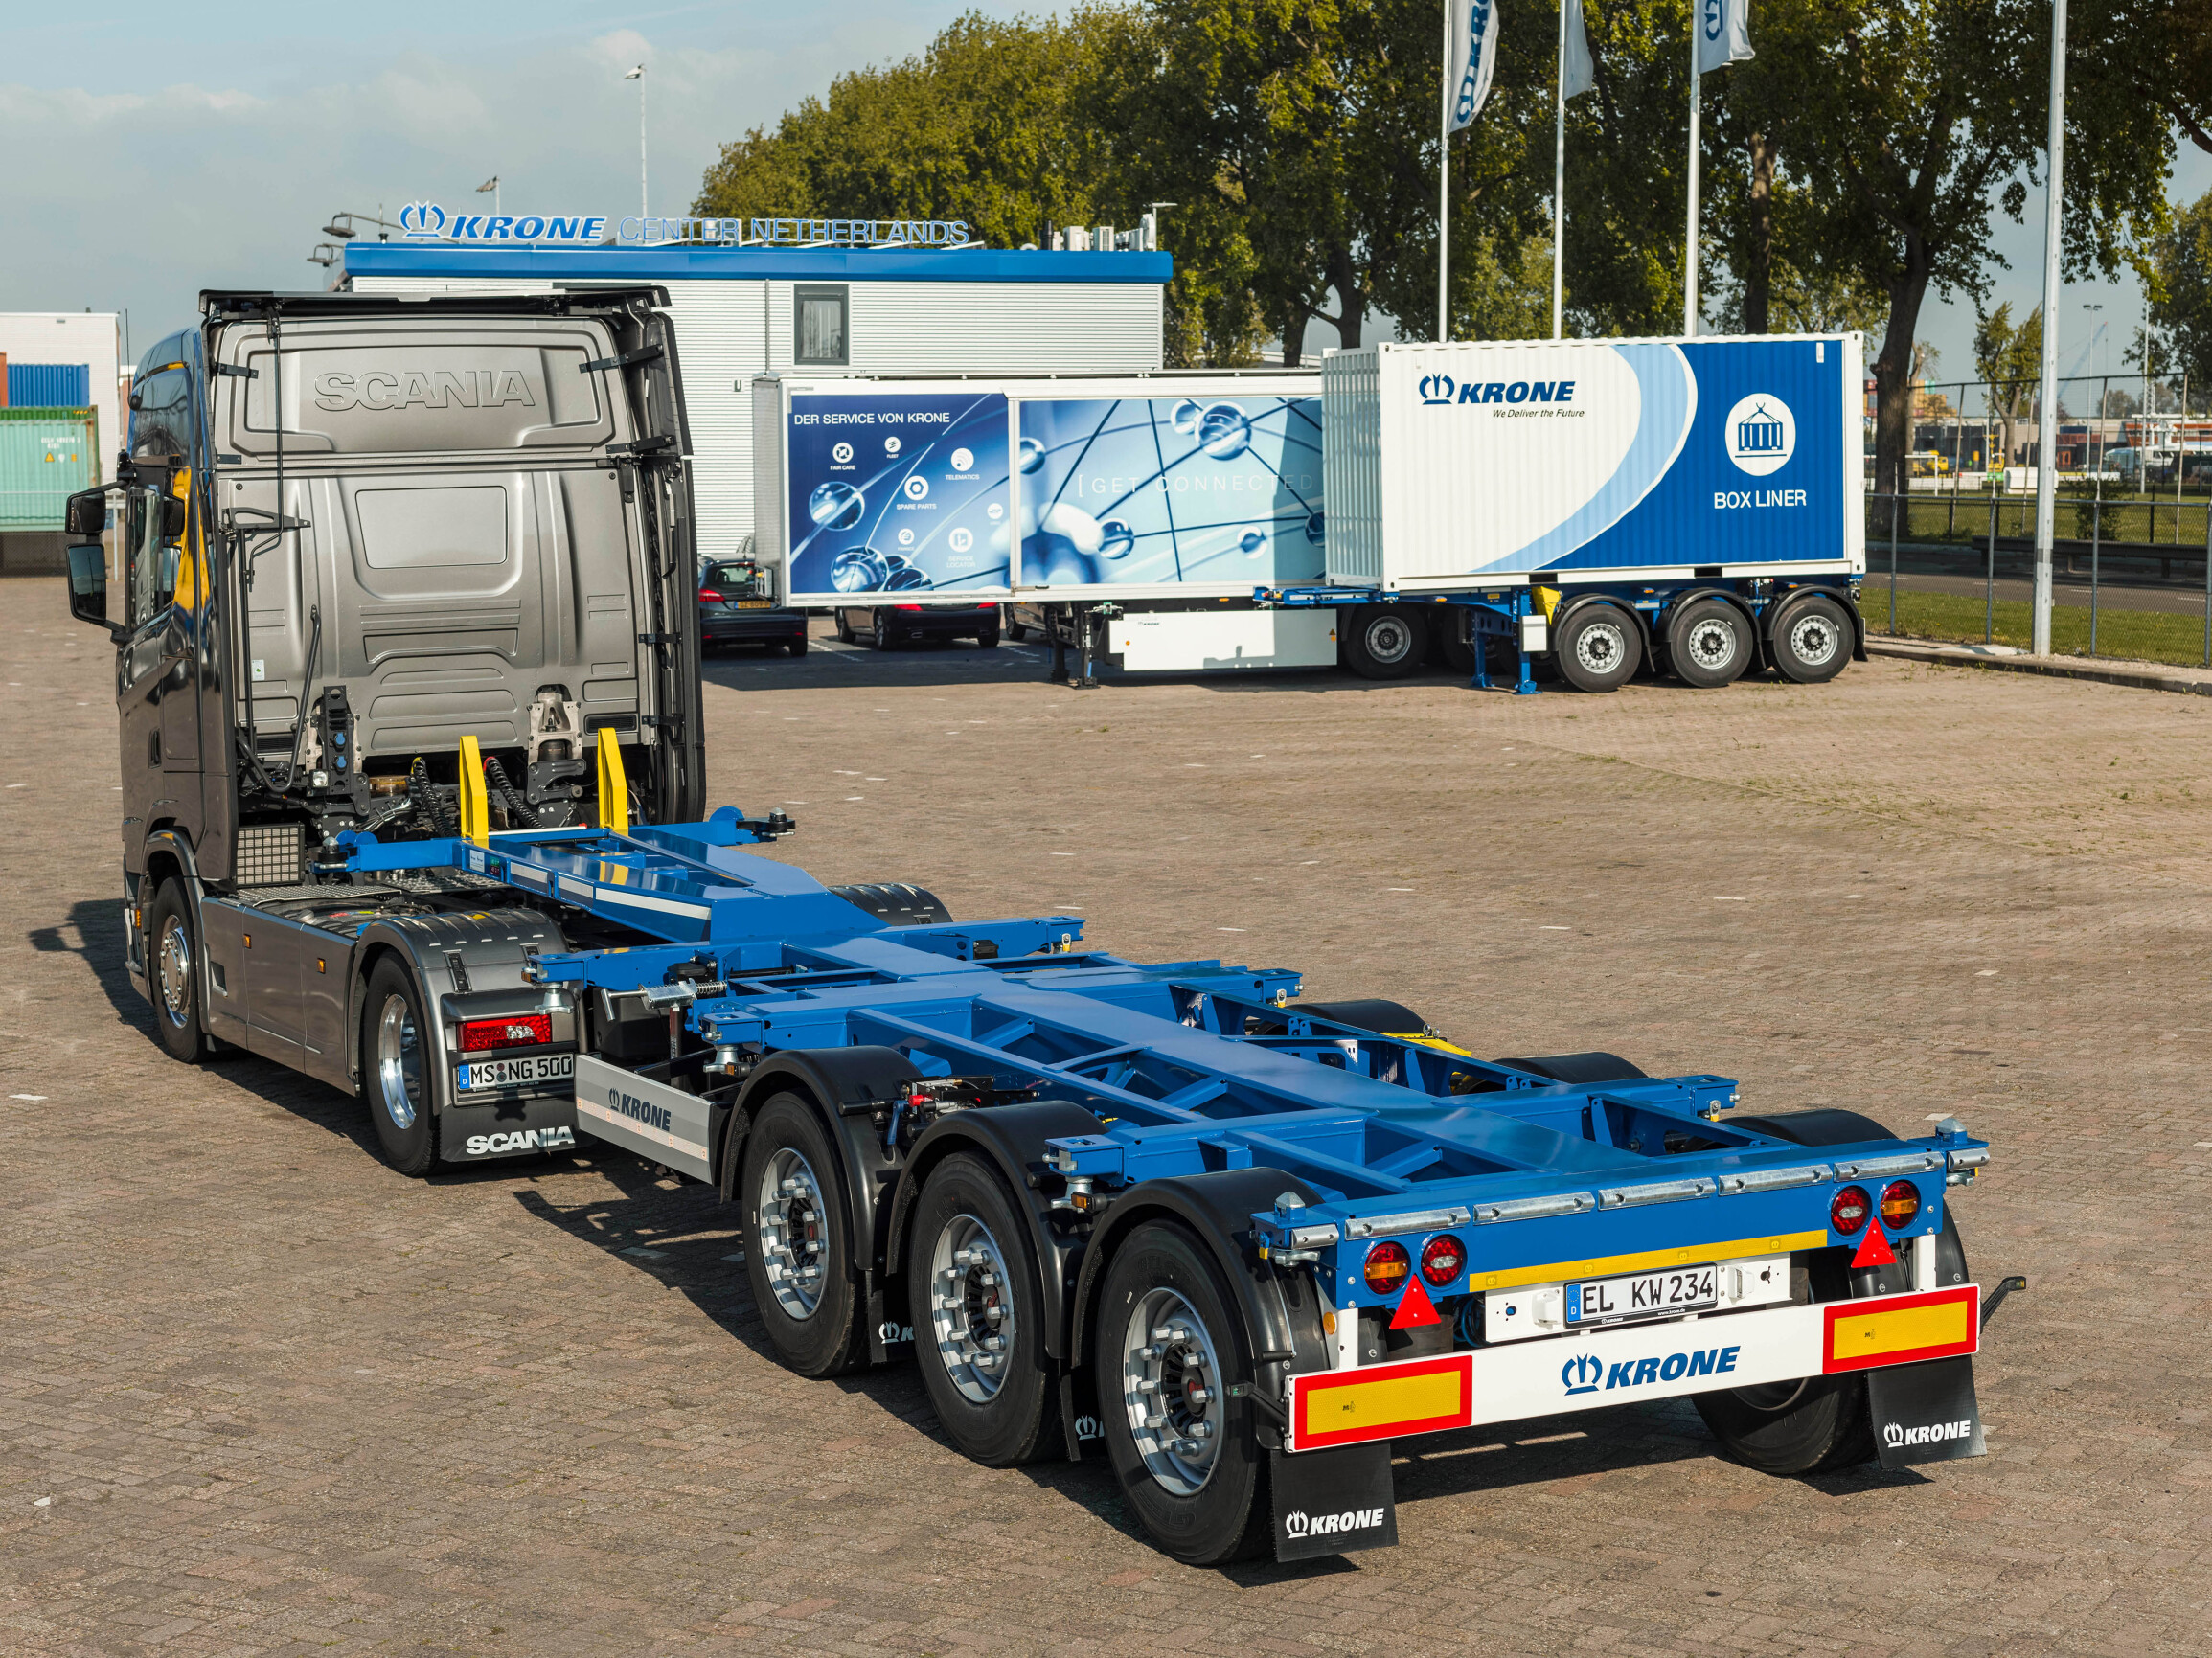 Container Chassis Box Liner SDC27 ELTU 70 KRONE1